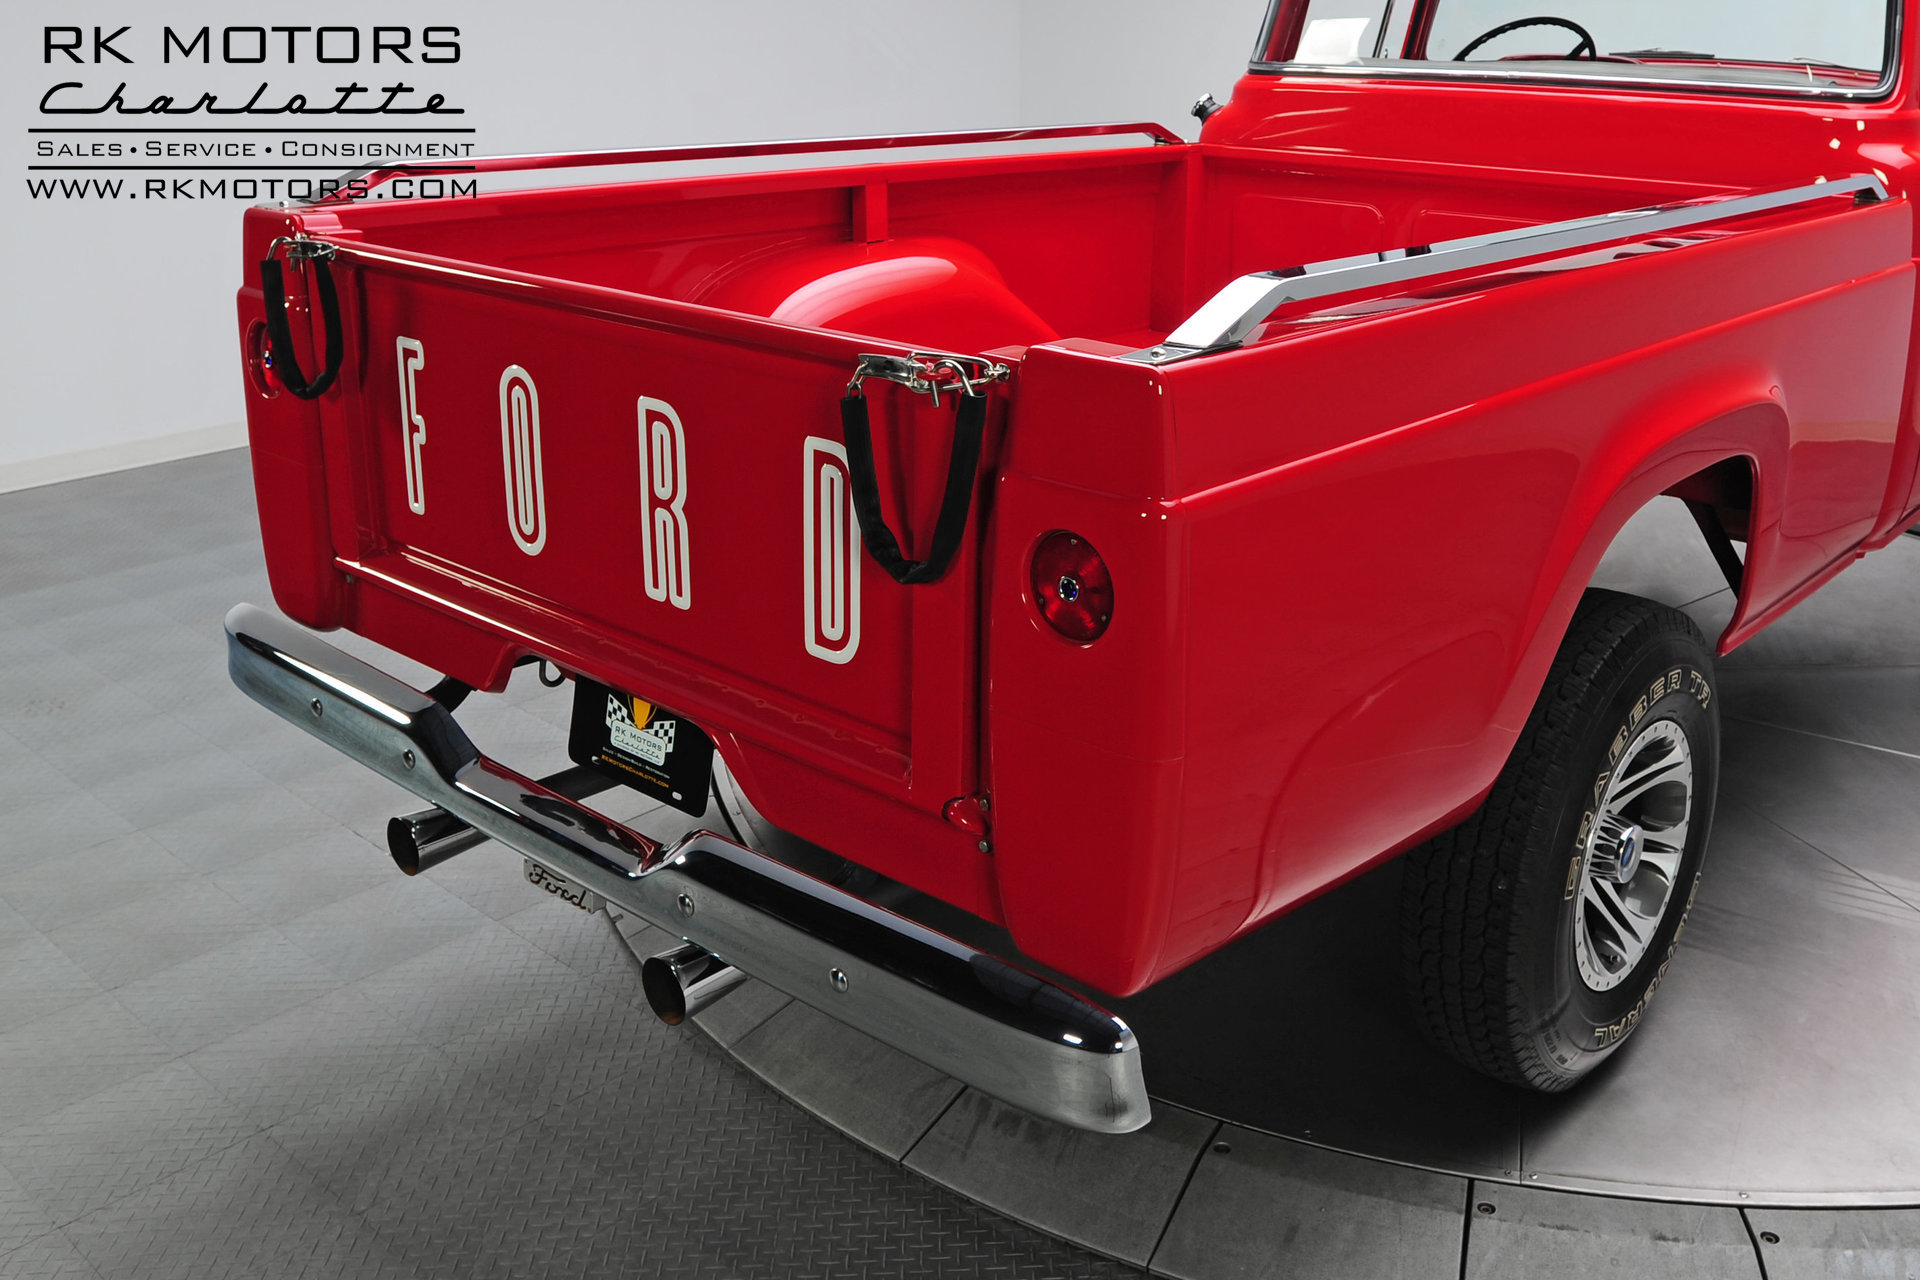 133083 1959 Ford F100 Rk Motors Classic Cars For Sale 1955 White 4x4